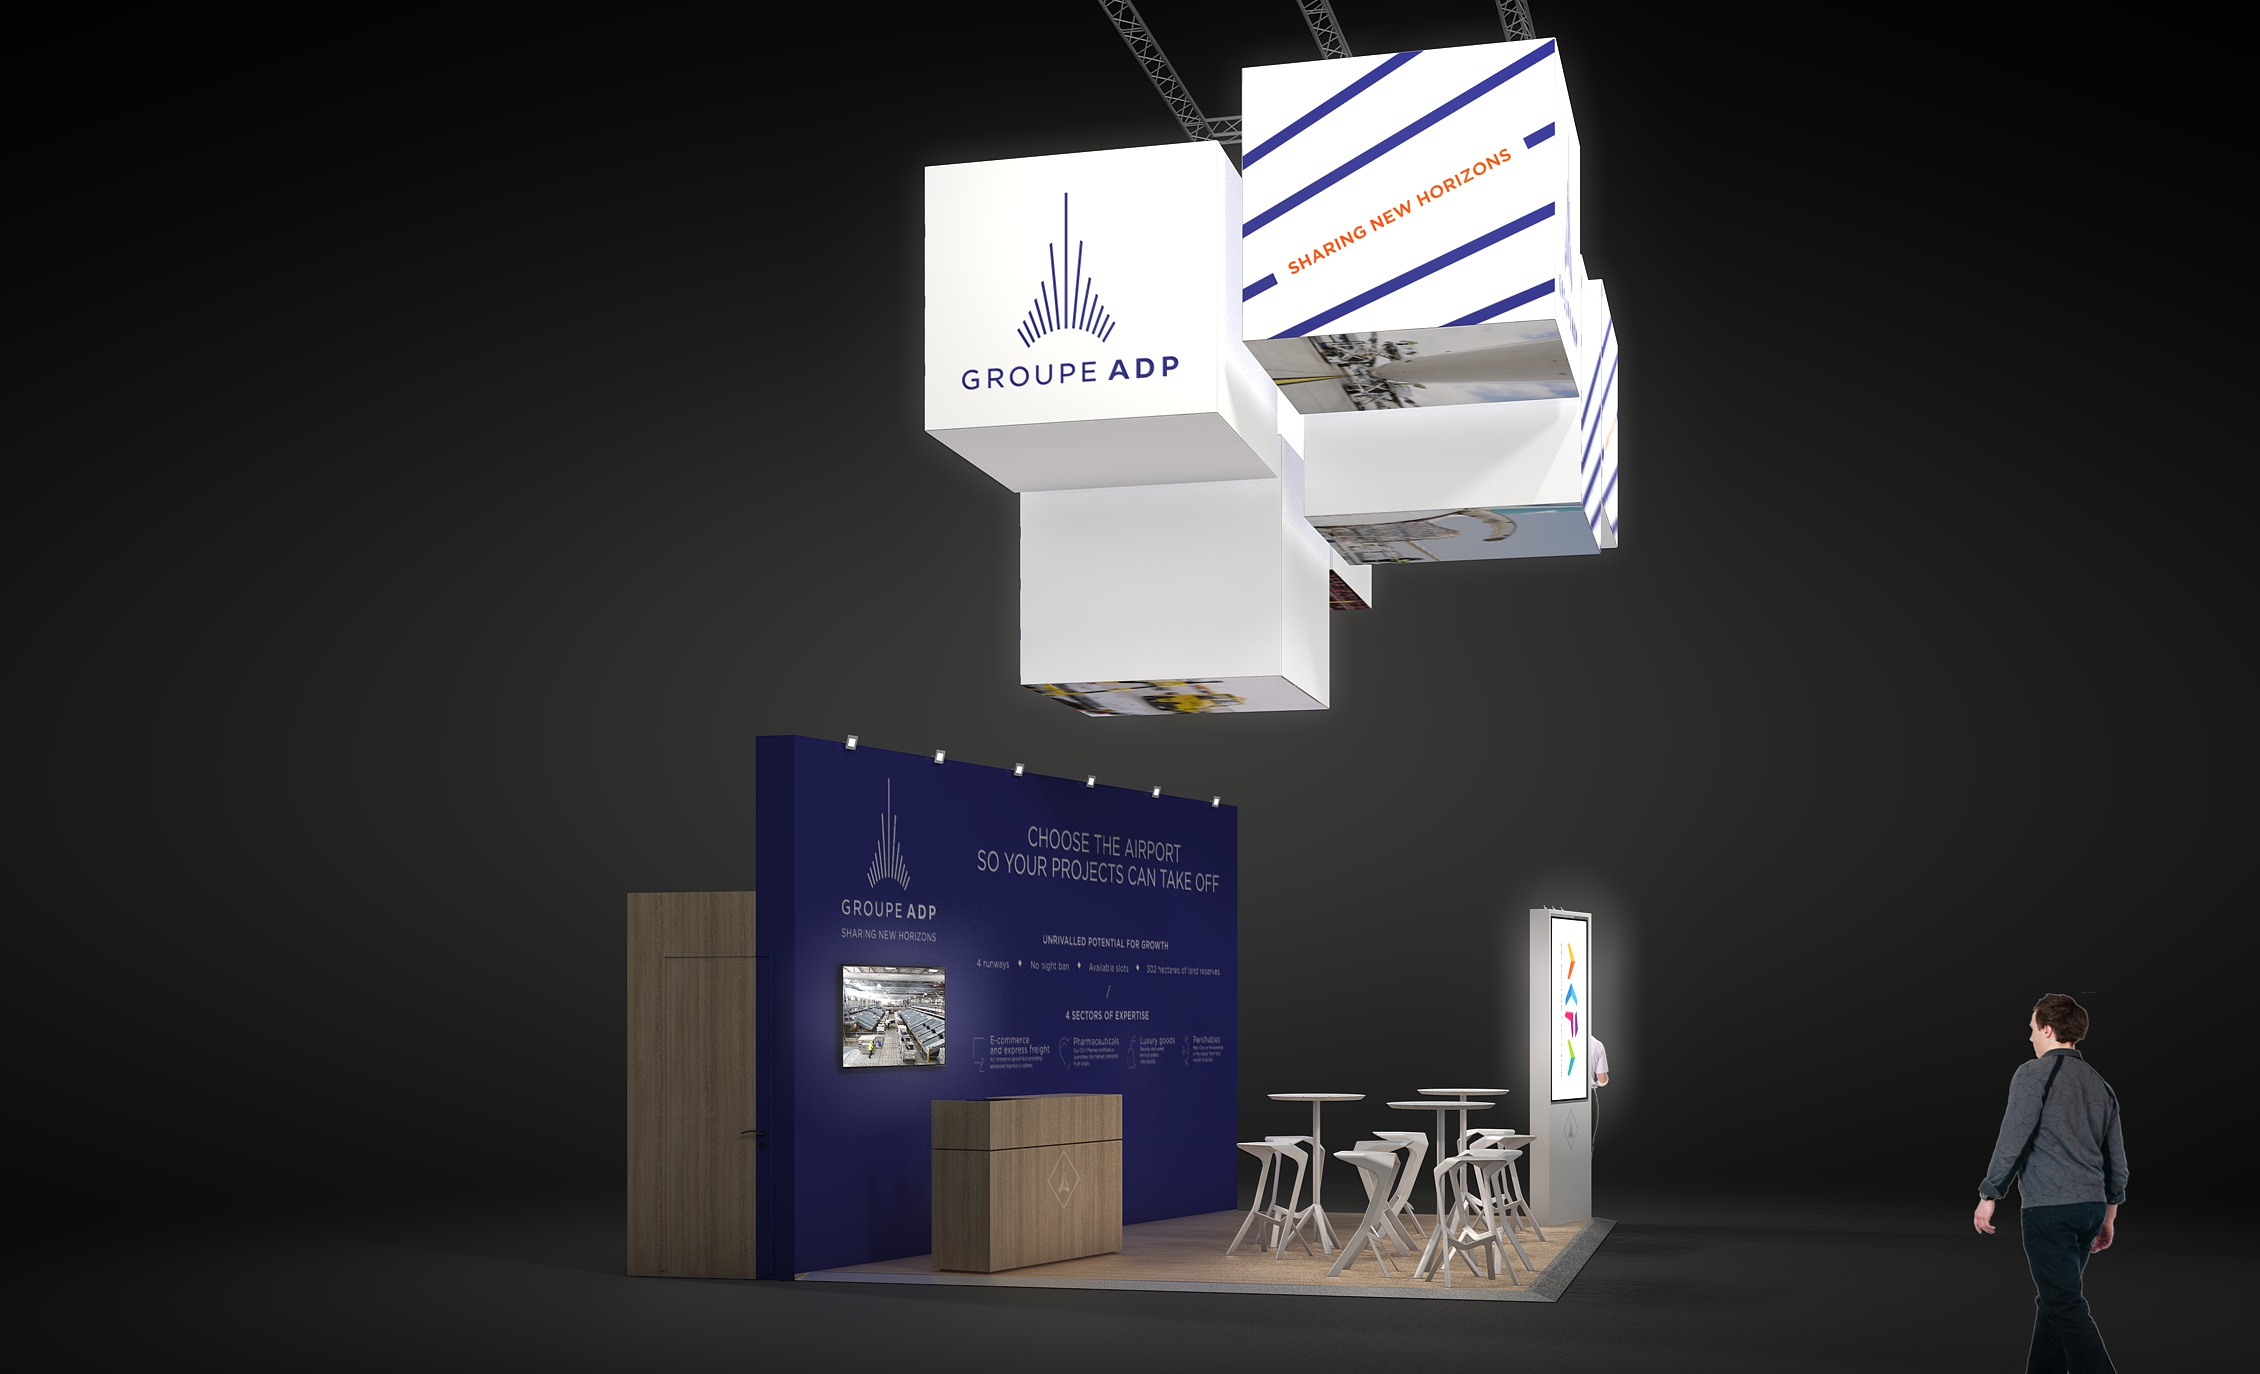 STAND BOOTH adp air cargo 12.jpg